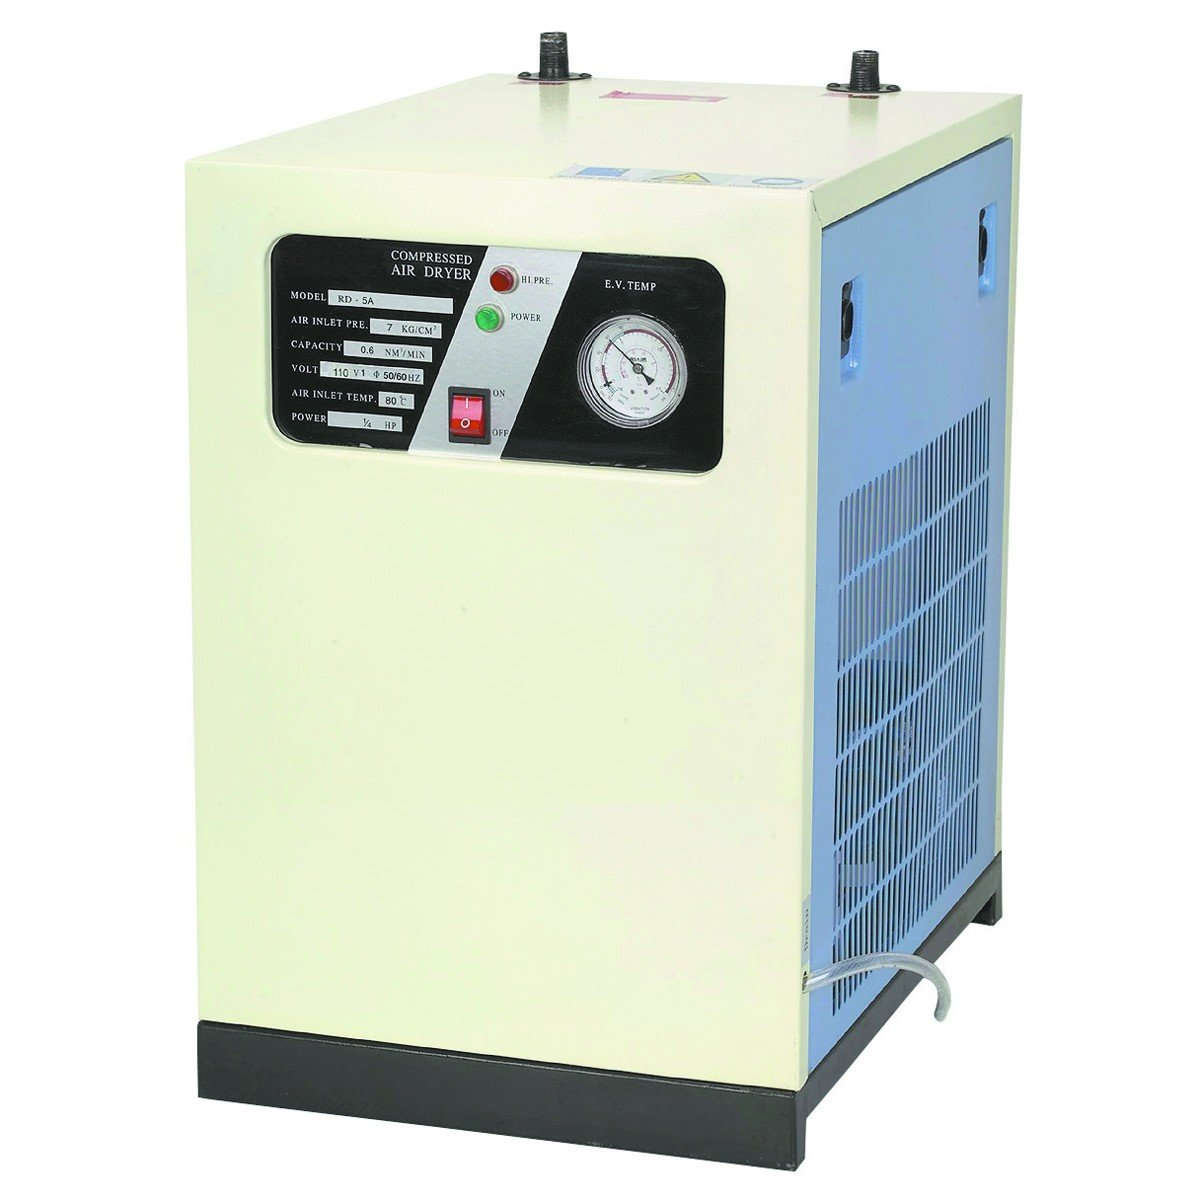 3-IN-1 REFRIGERATED COMPRESSED AIR DRYER SYSTEM COMPRESSOR by Central Pneumatic